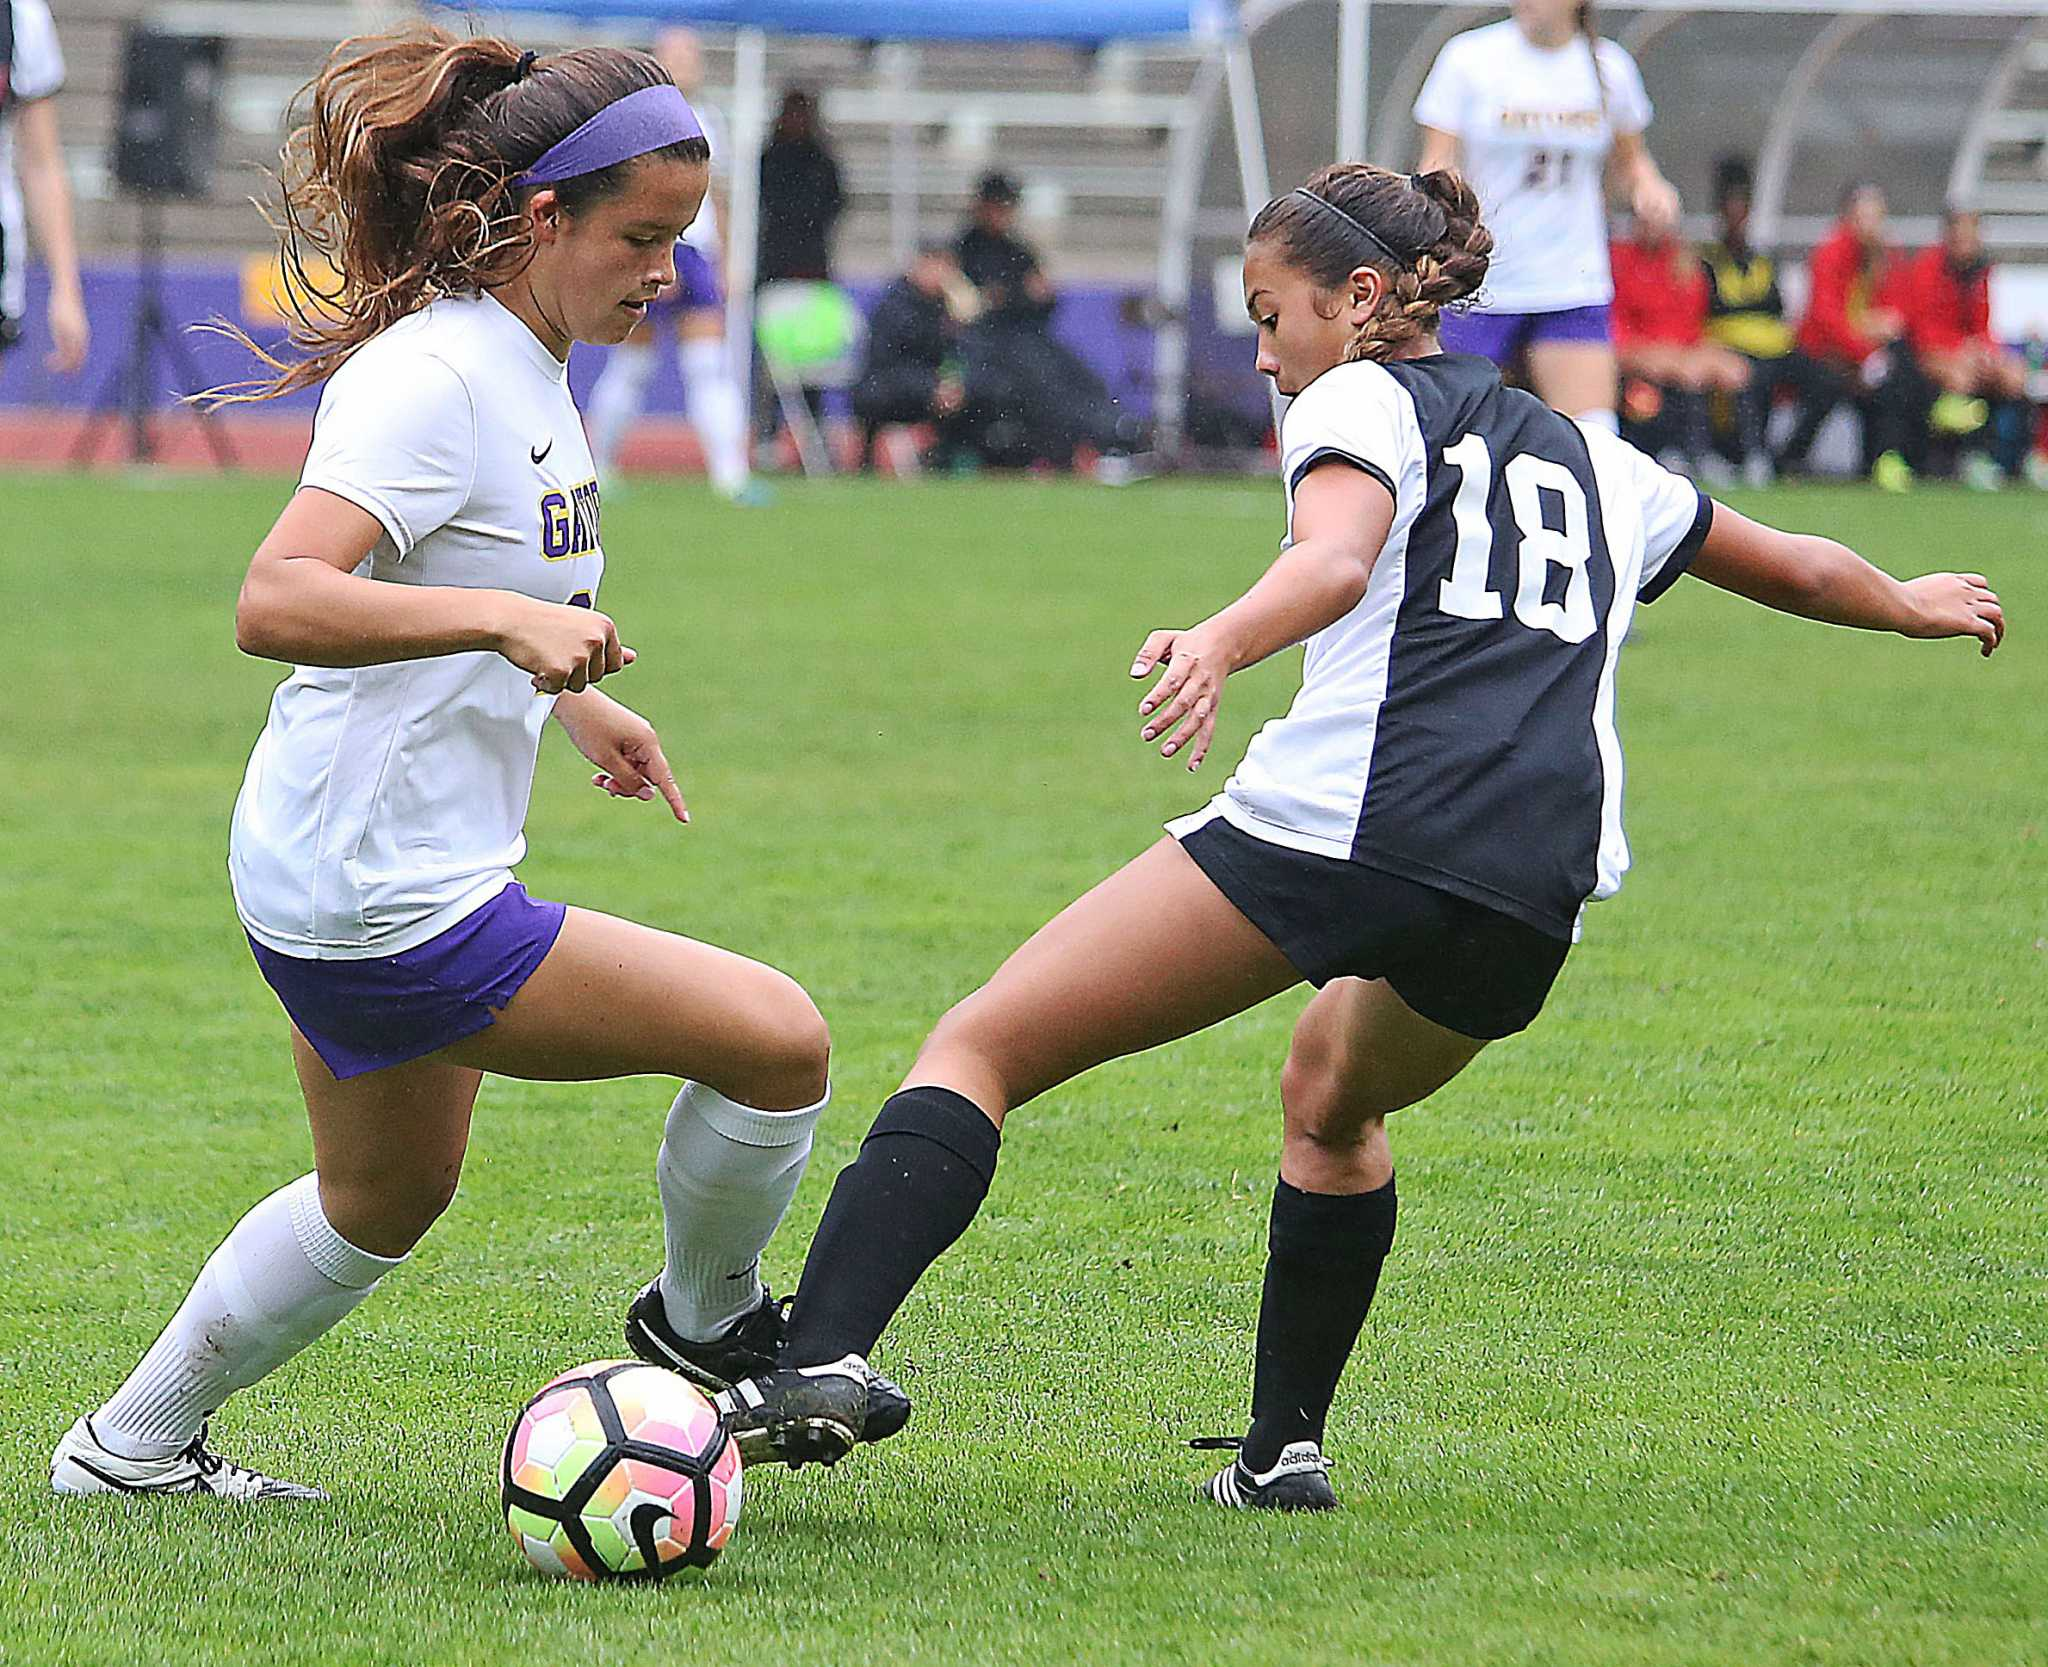 Sluggish start may foil playoff dreams for women's soccer